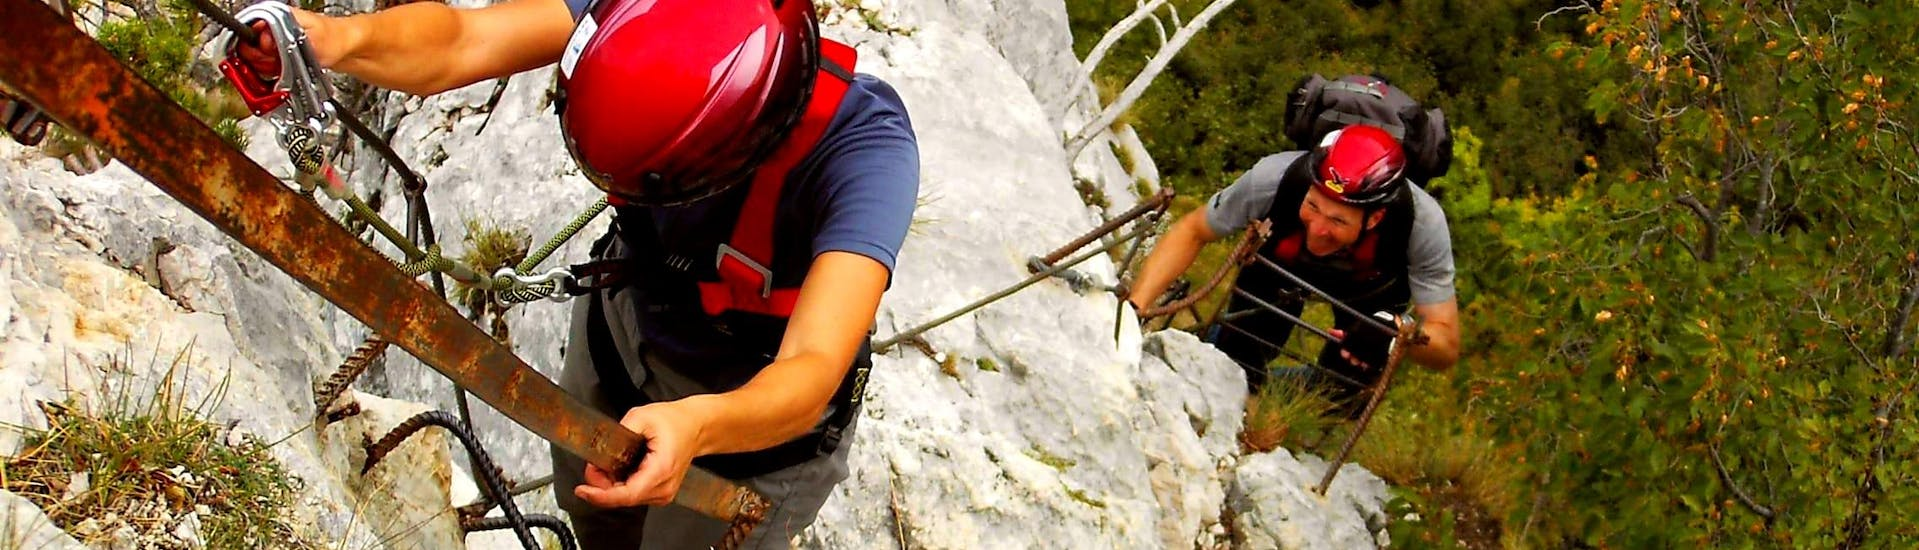 Two participants in the Via Ferrata Via dell'Amicizia organized by Skyclimber proceed in the direction of the photographer.